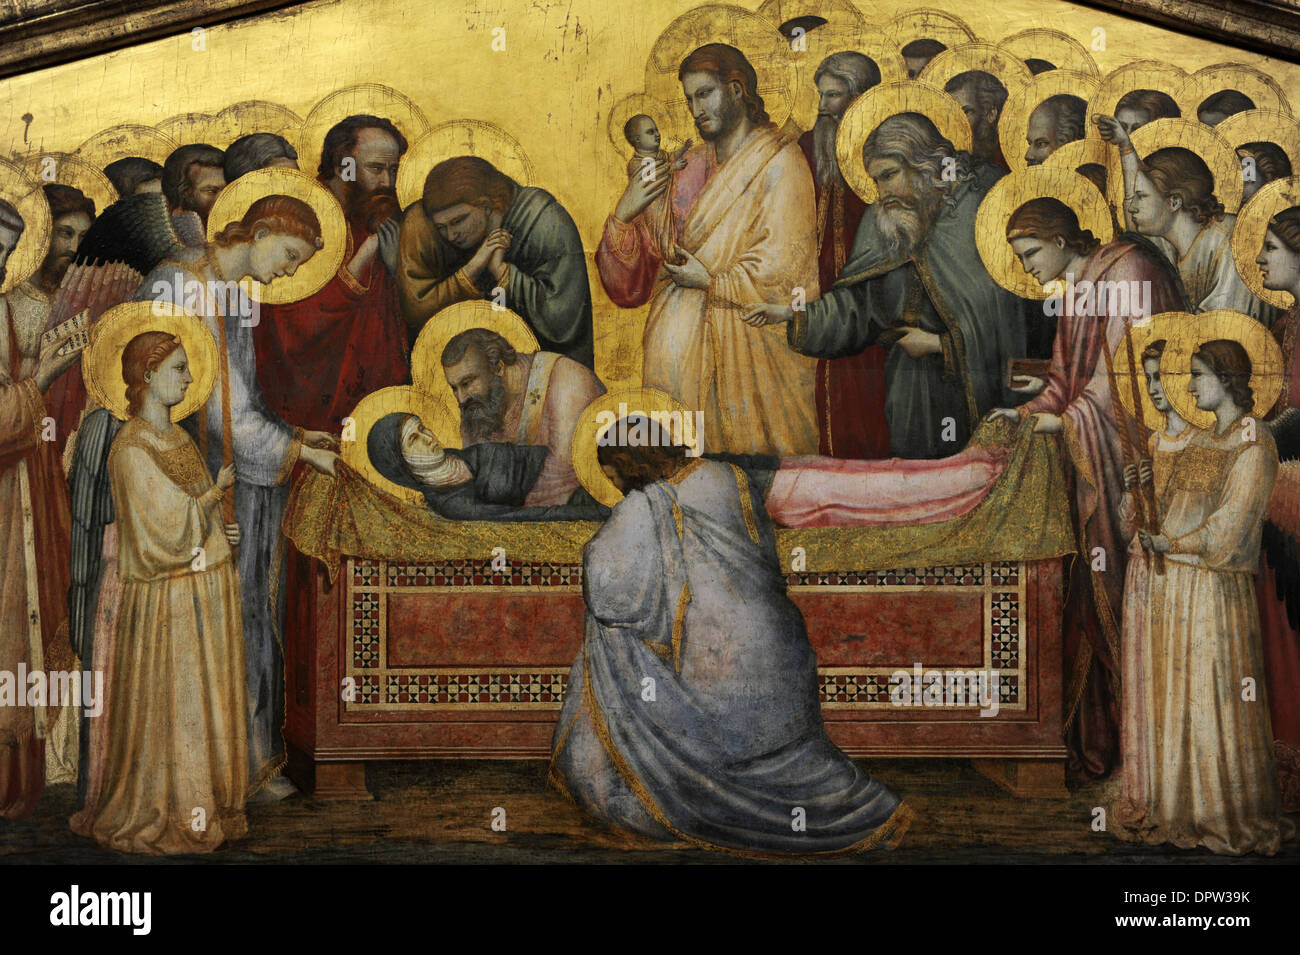 Giotto di Bondone (1267-1337). Italian painter. The Entombment of Mary, c.1310. Detail. Gemaldegalerie. Berlin. Germany. - Stock Image